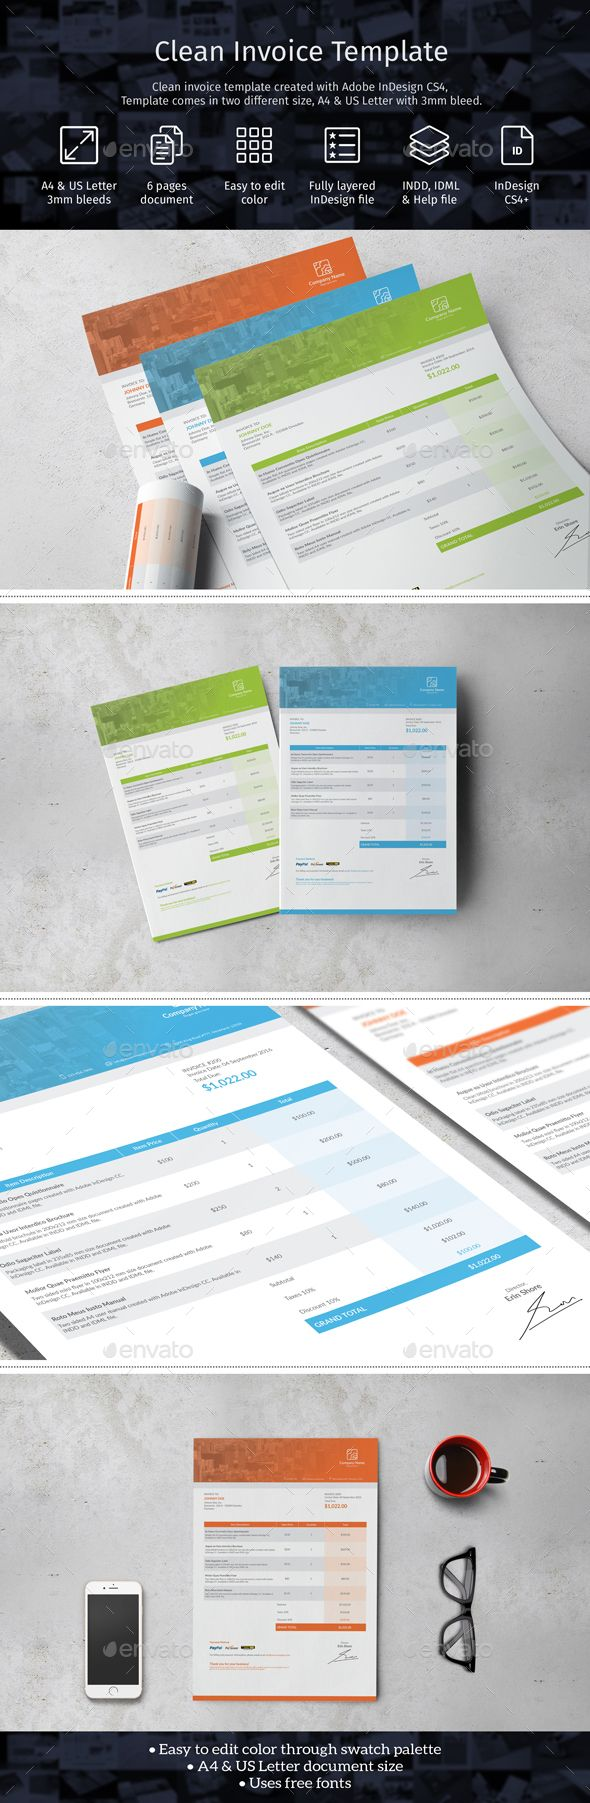 Clean Invoice Template Template Graphic Design Services And Adobe - Graphic design invoice template indesign